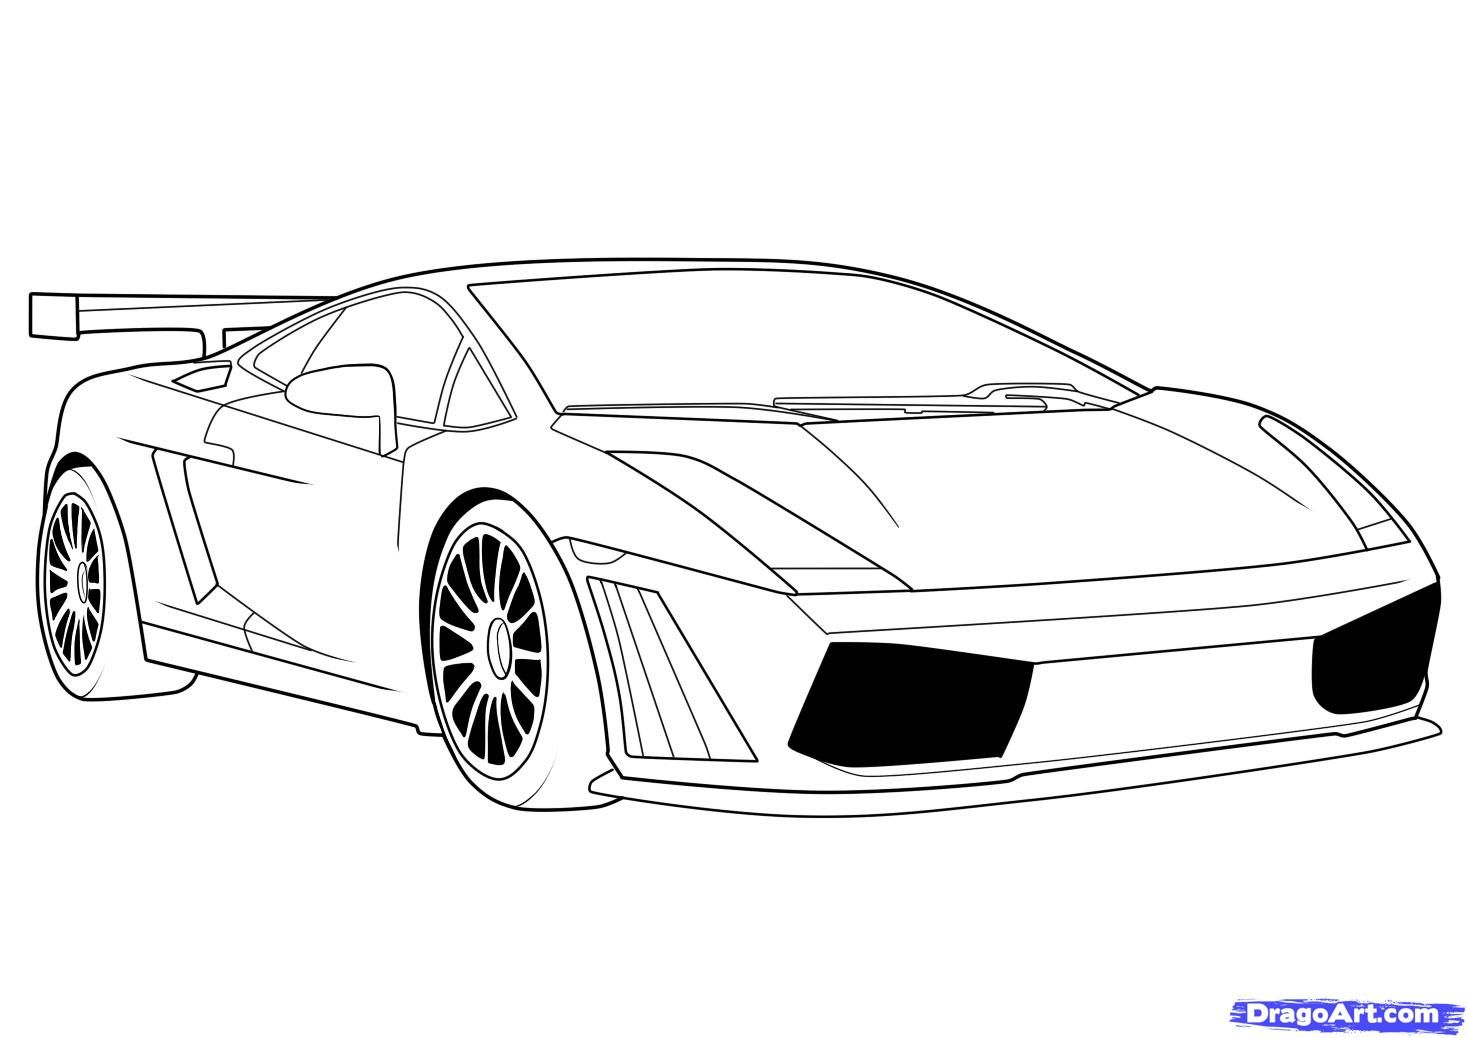 image result for lamborghini drawing outline